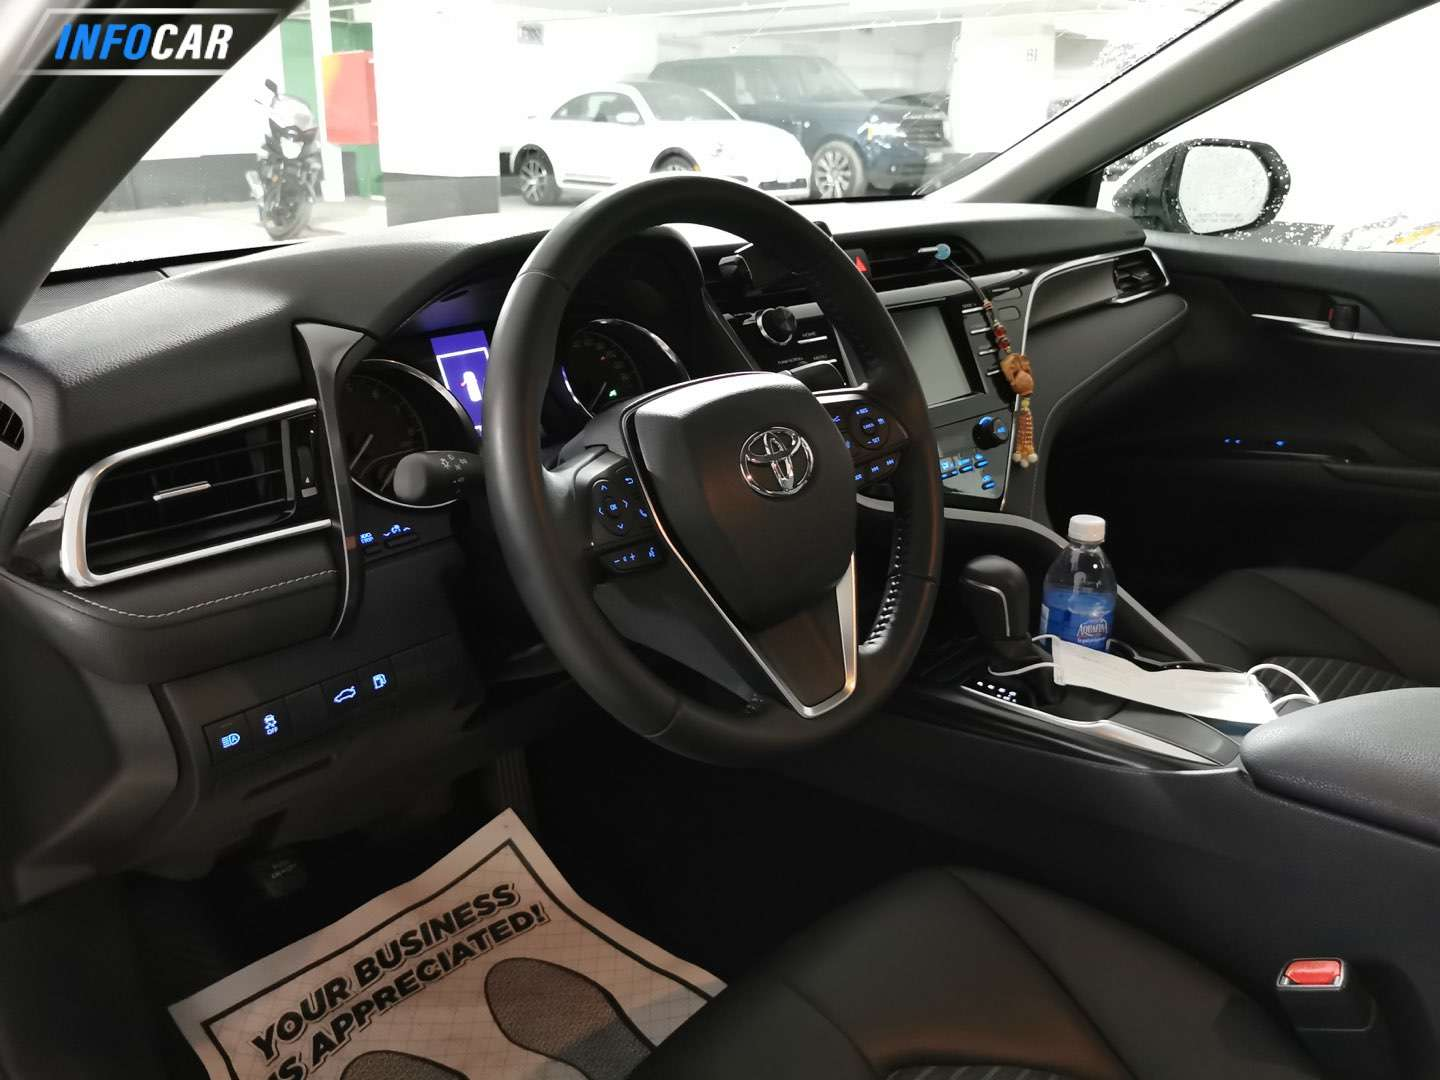 2018 Toyota Camry  - INFOCAR - Toronto's Most Comprehensive New and Used Auto Trading Platform